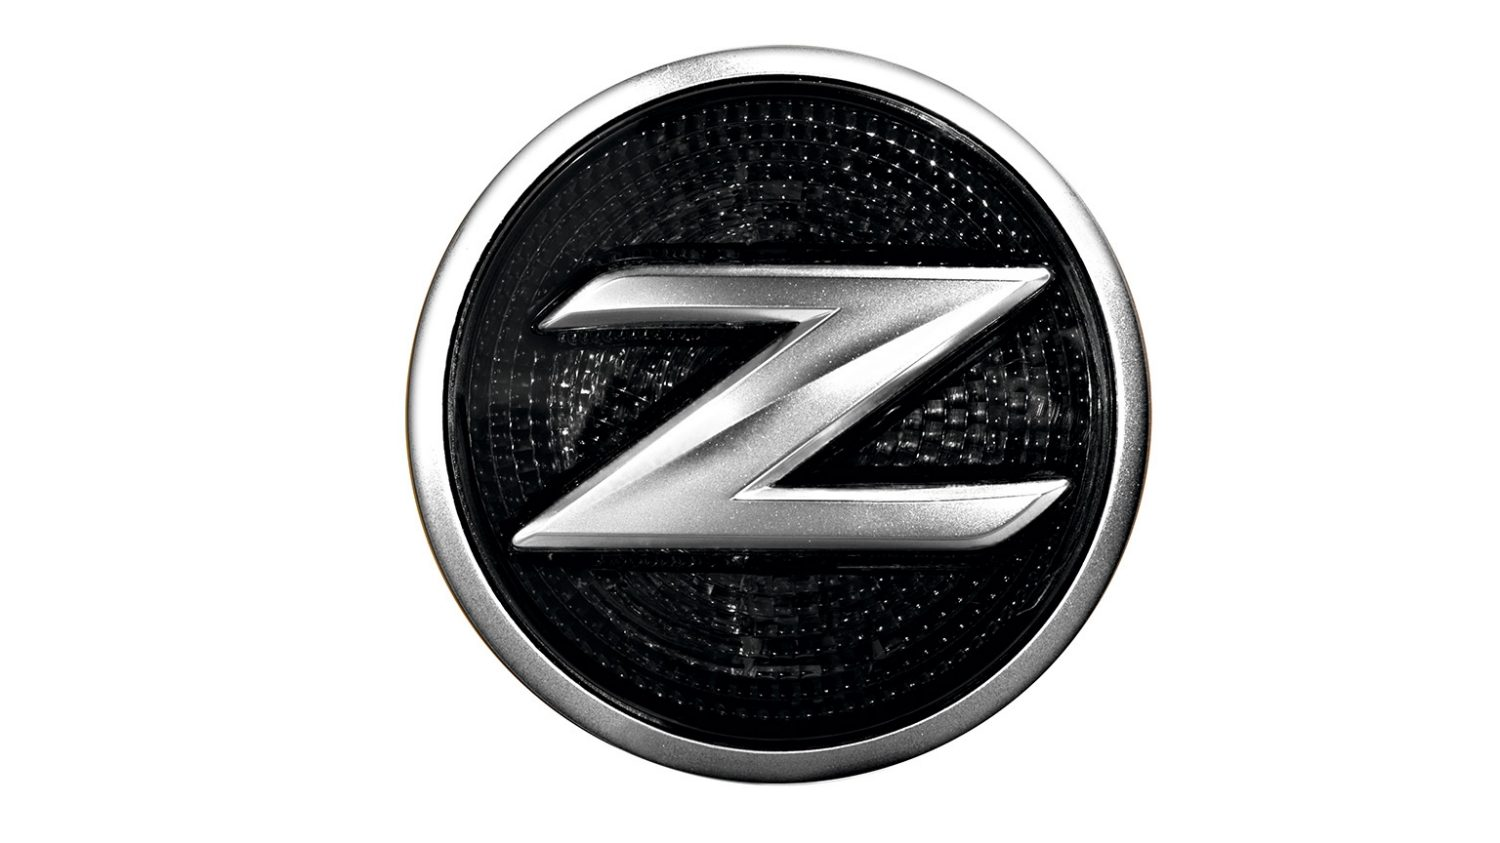 The Nissan Z Car logo